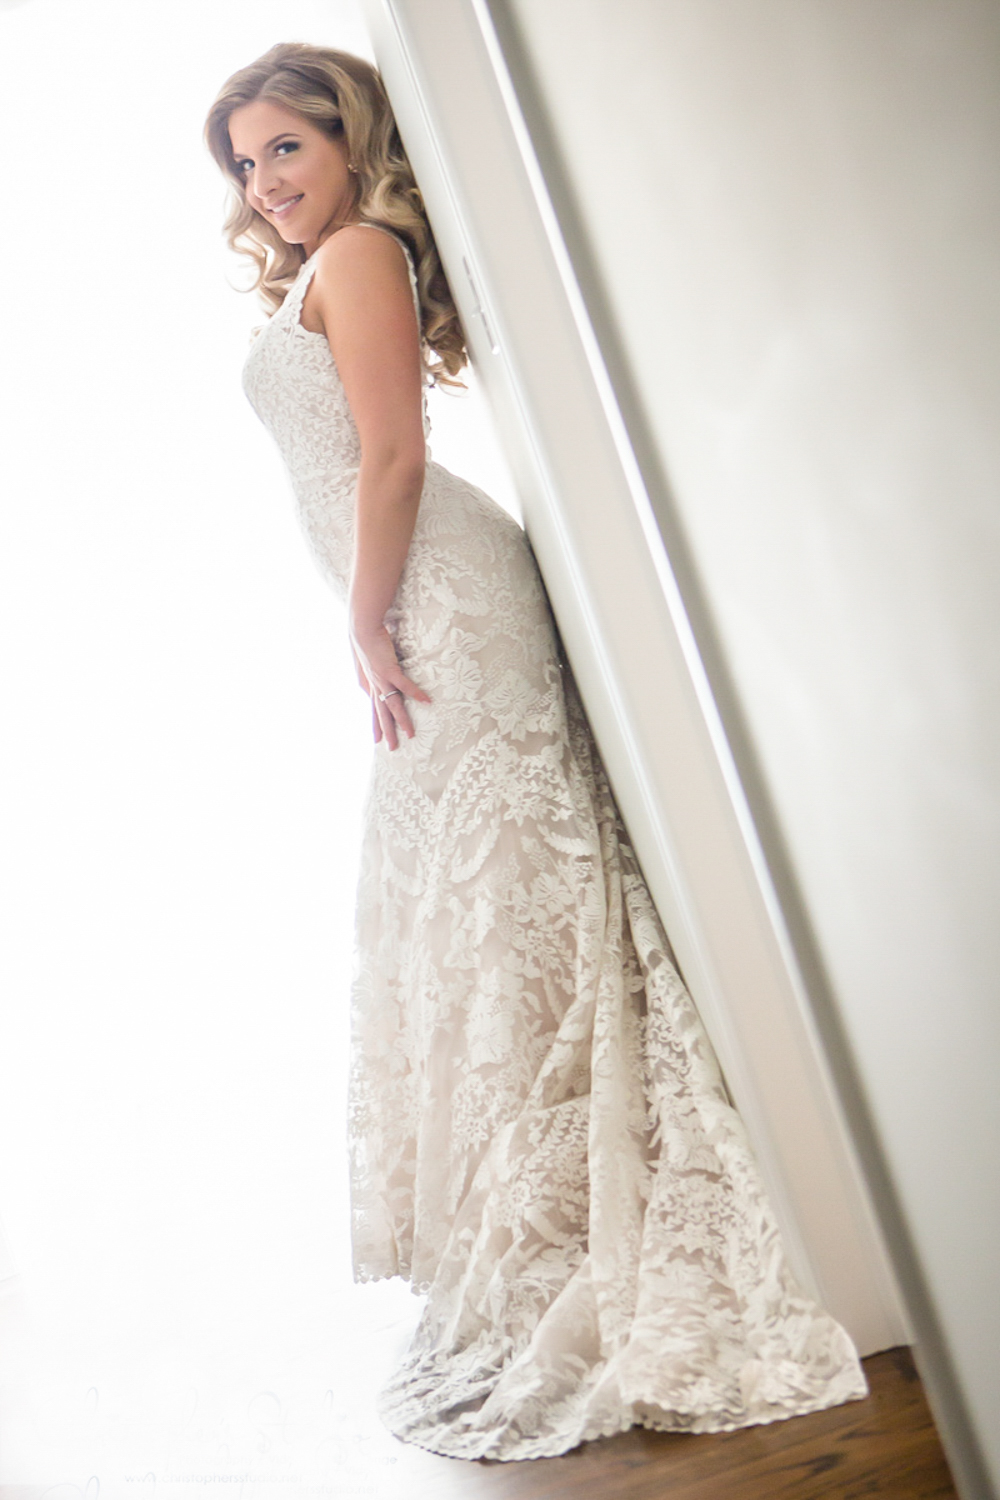 the-briarcliff-manor-bride-gown-photo-ny